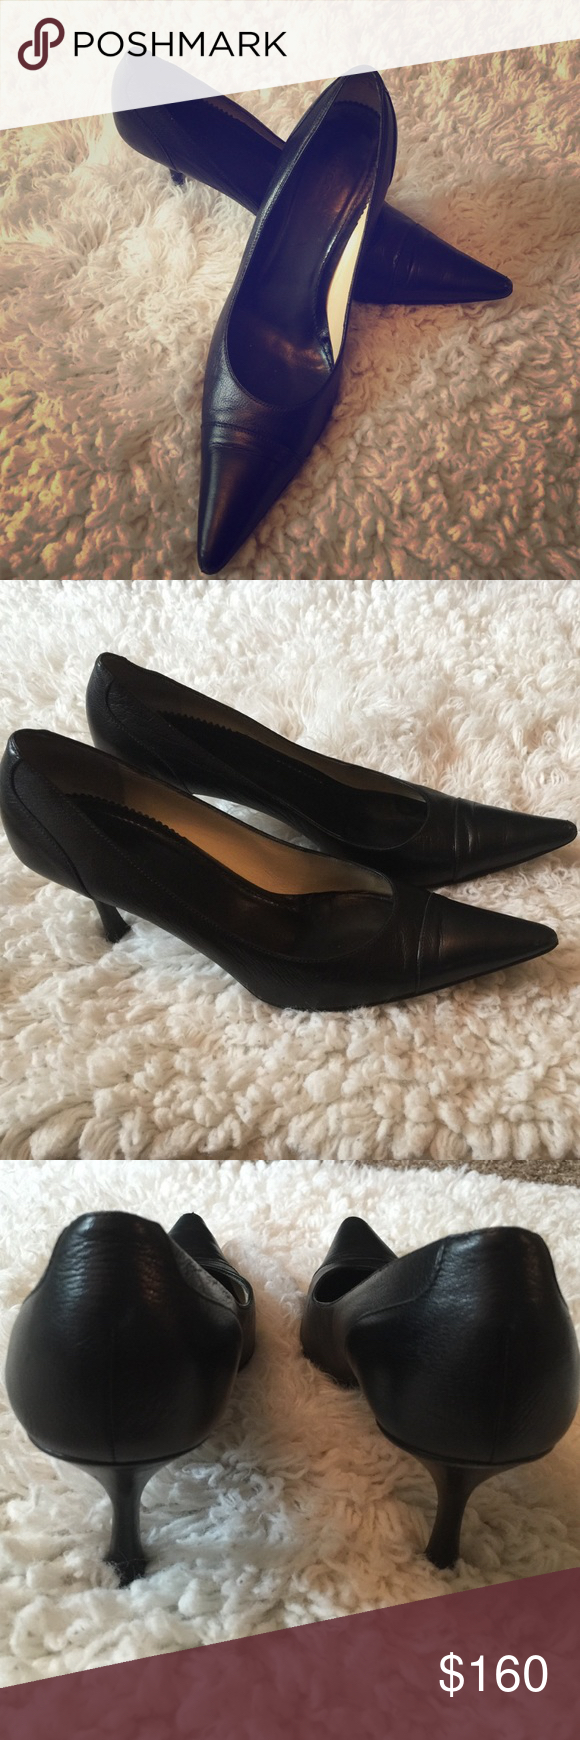 a4b067fcc77 Selling this Gucci leather pointed to pumps. Sz11 on Poshmark! My username  is  fherin.  shopmycloset  poshmark  fashion  shopping  style  forsale   Gucci   ...